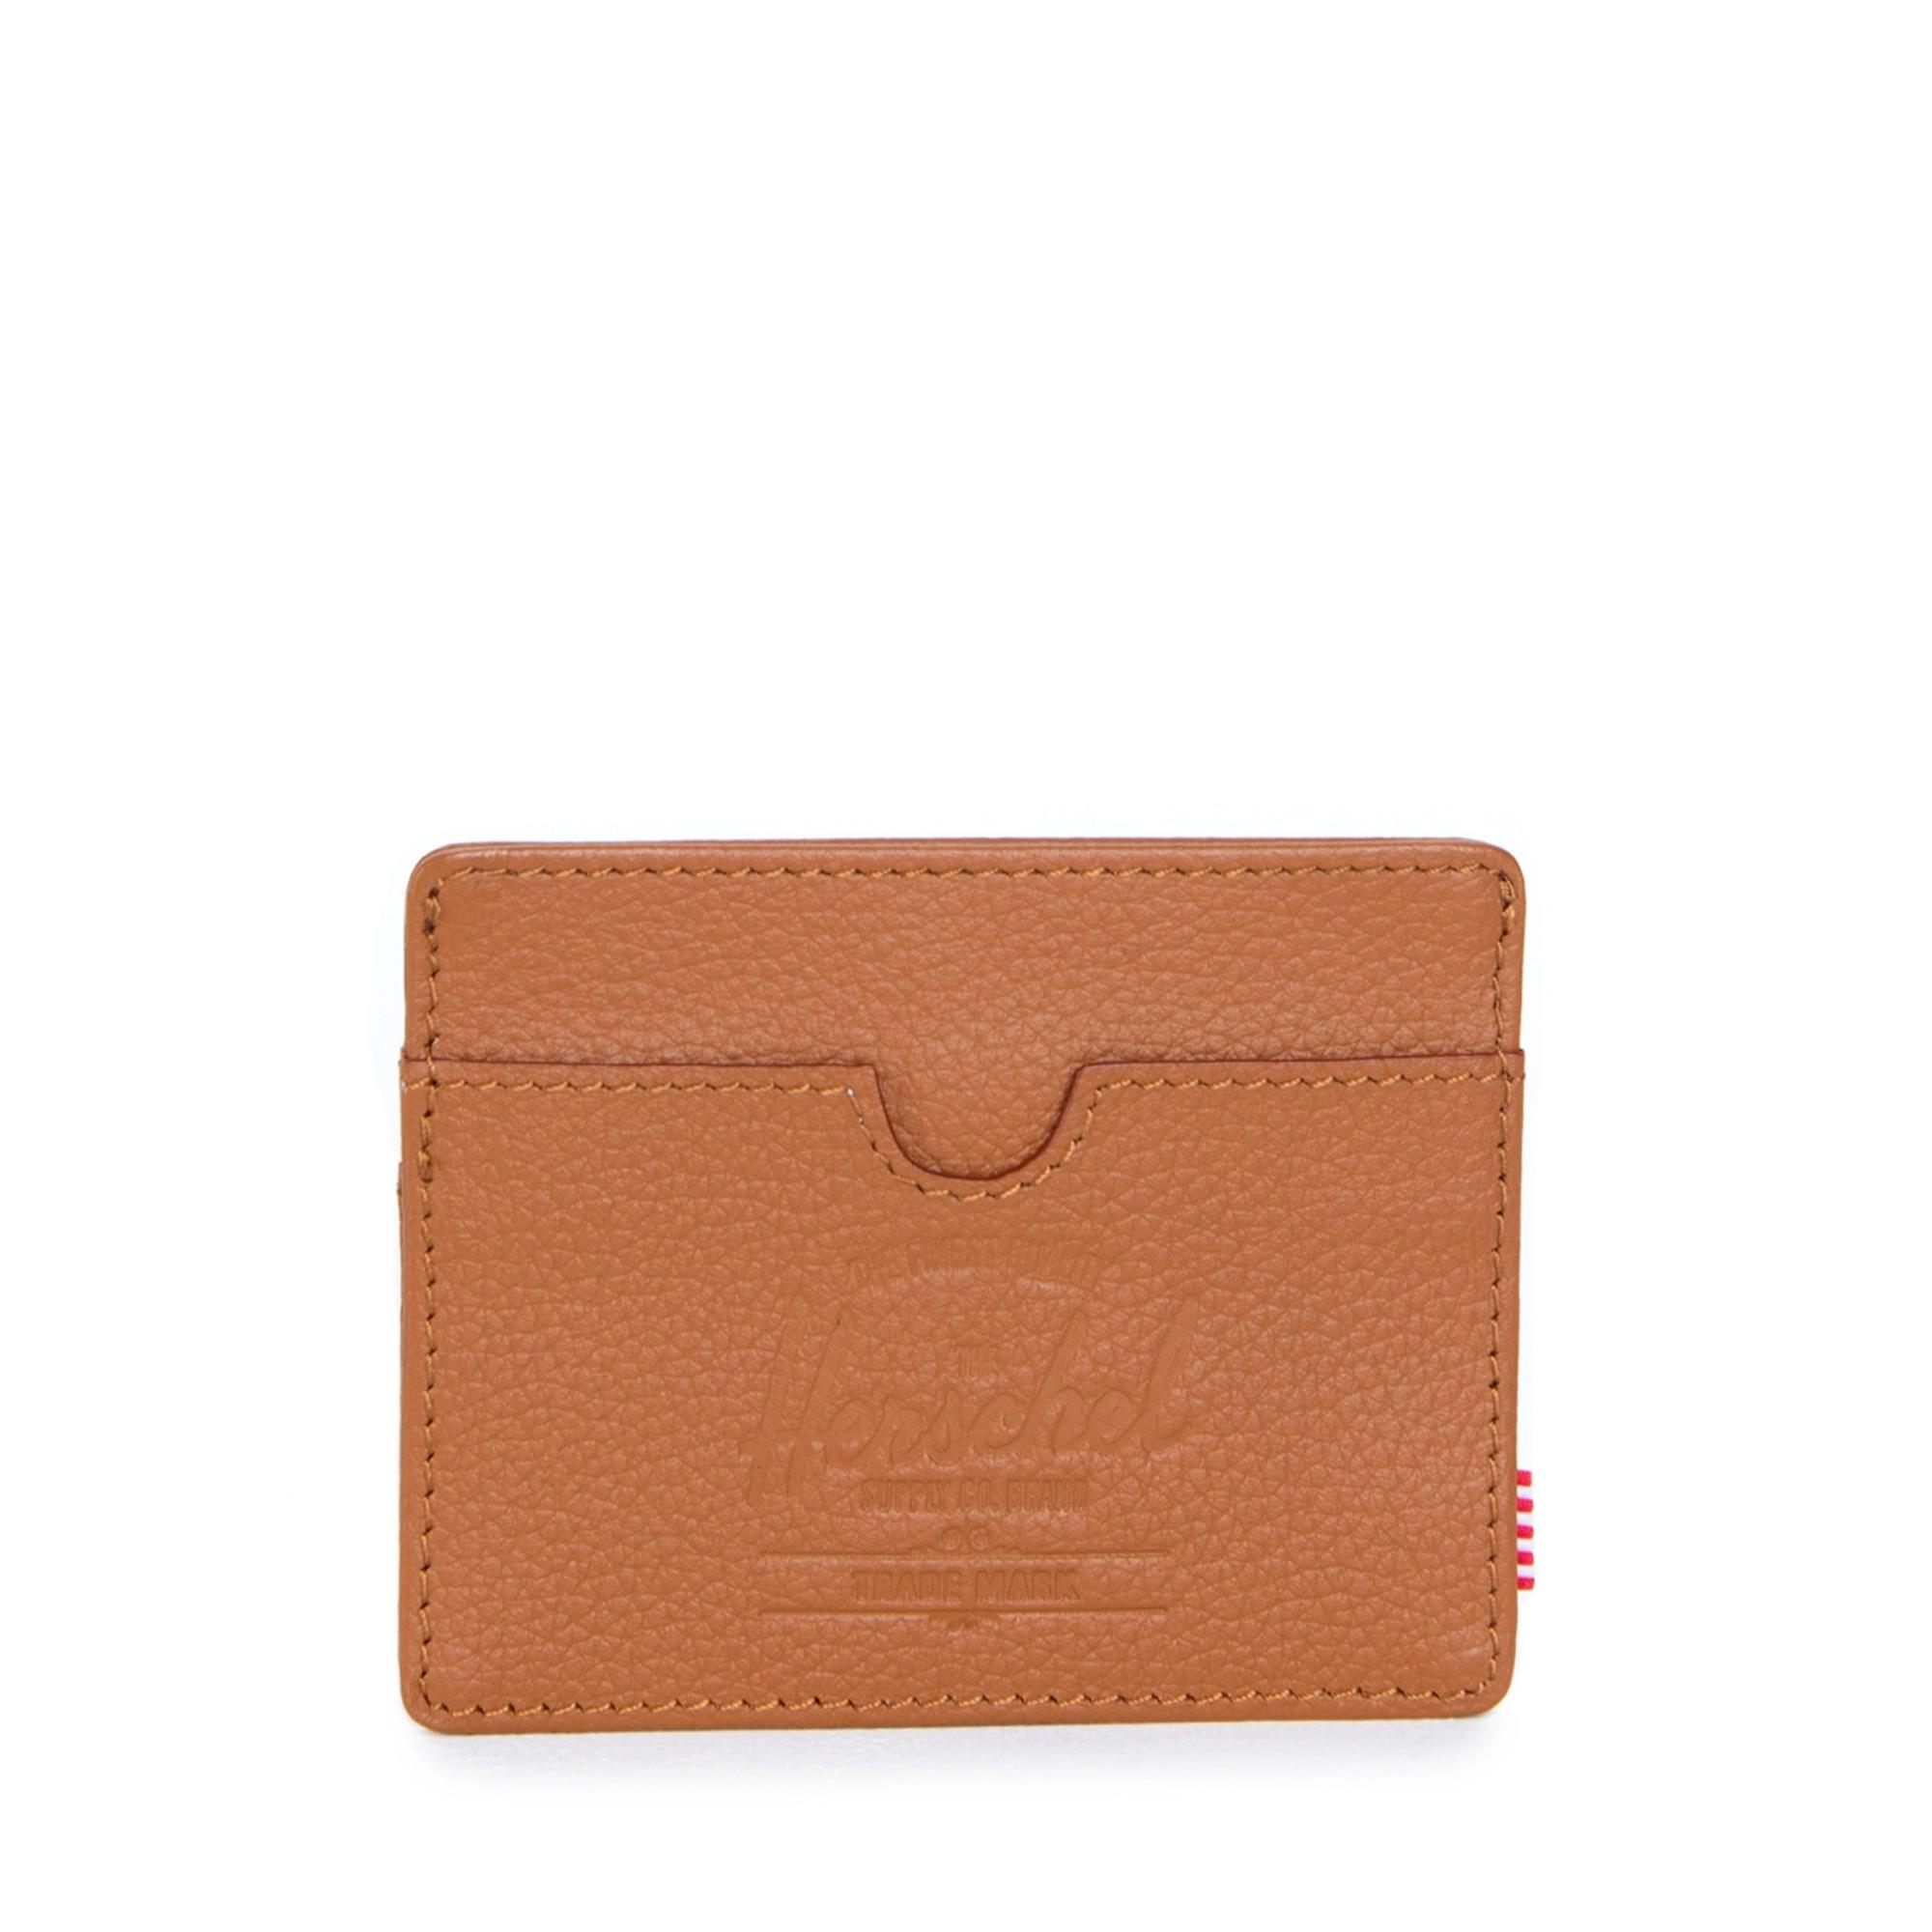 Herschel Charlie Leather - Tan Pebbled Leather